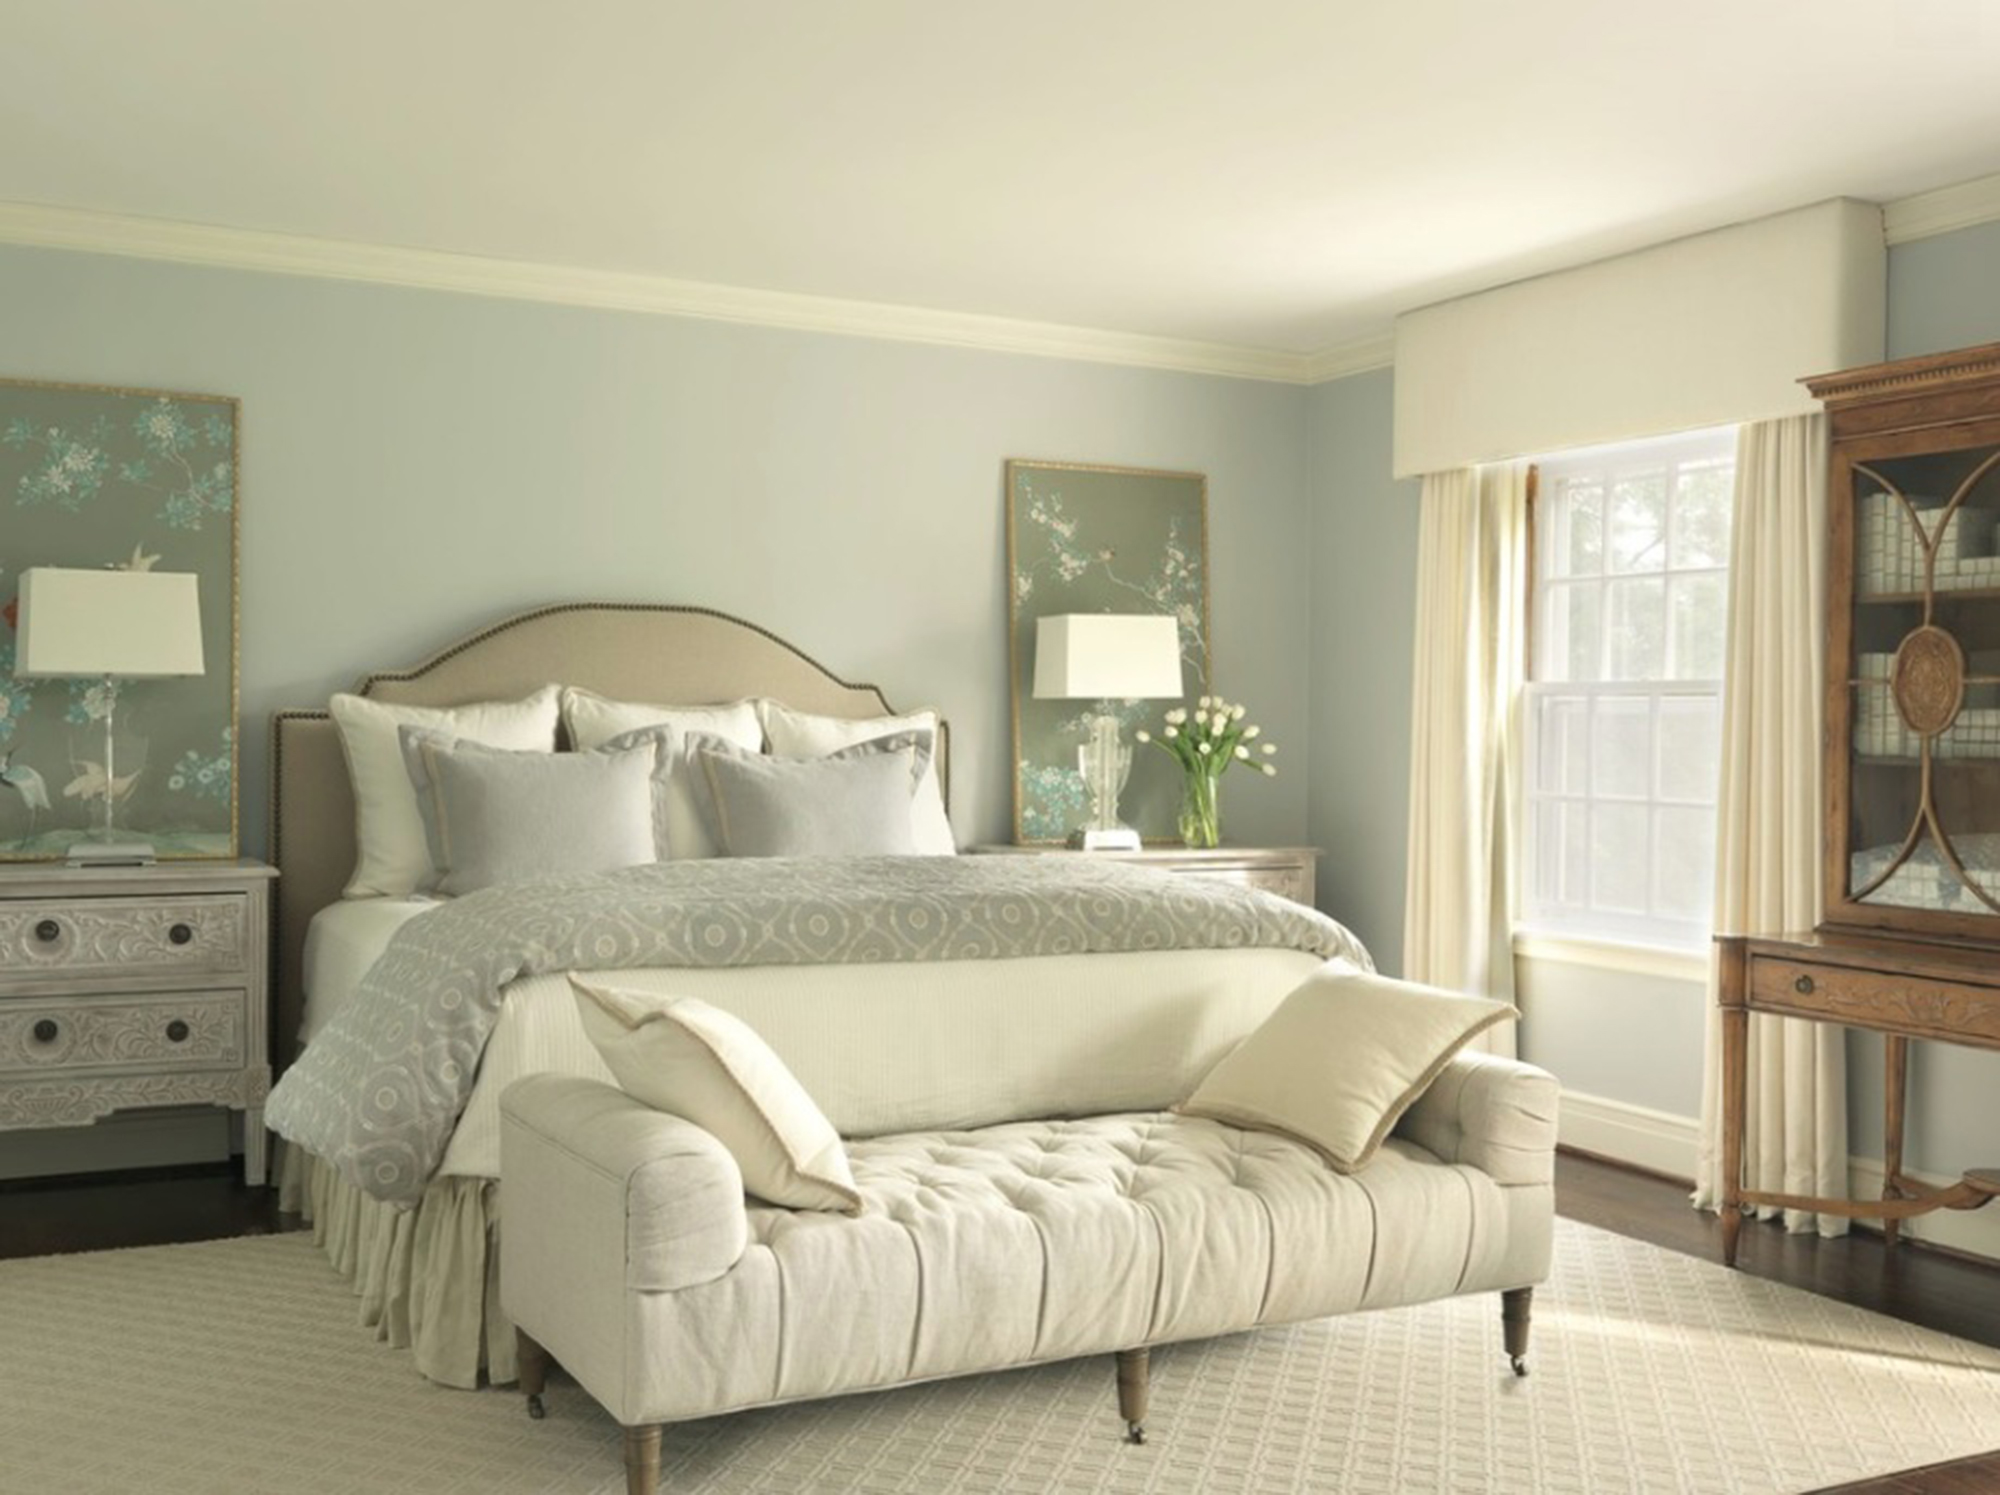 Tremendous Guest Room Ideas Thatll Have You Gushing Kathy Kuo Blog Download Free Architecture Designs Terchretrmadebymaigaardcom